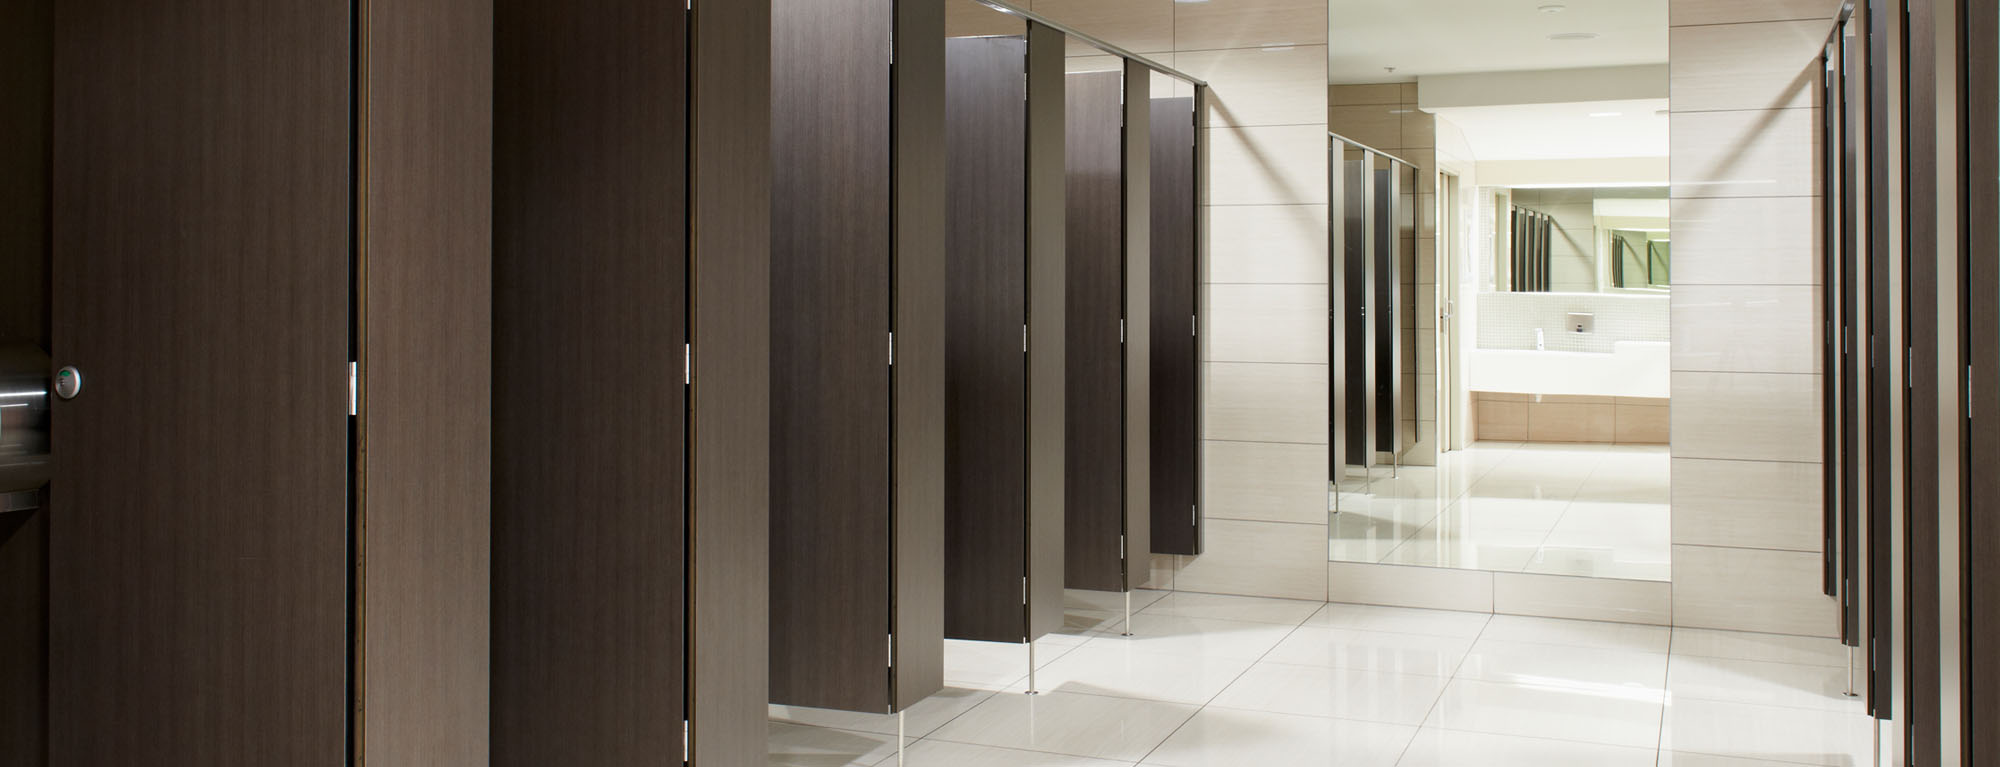 Partition Toilet Walls For Offices Malls Schools Jecams Inc